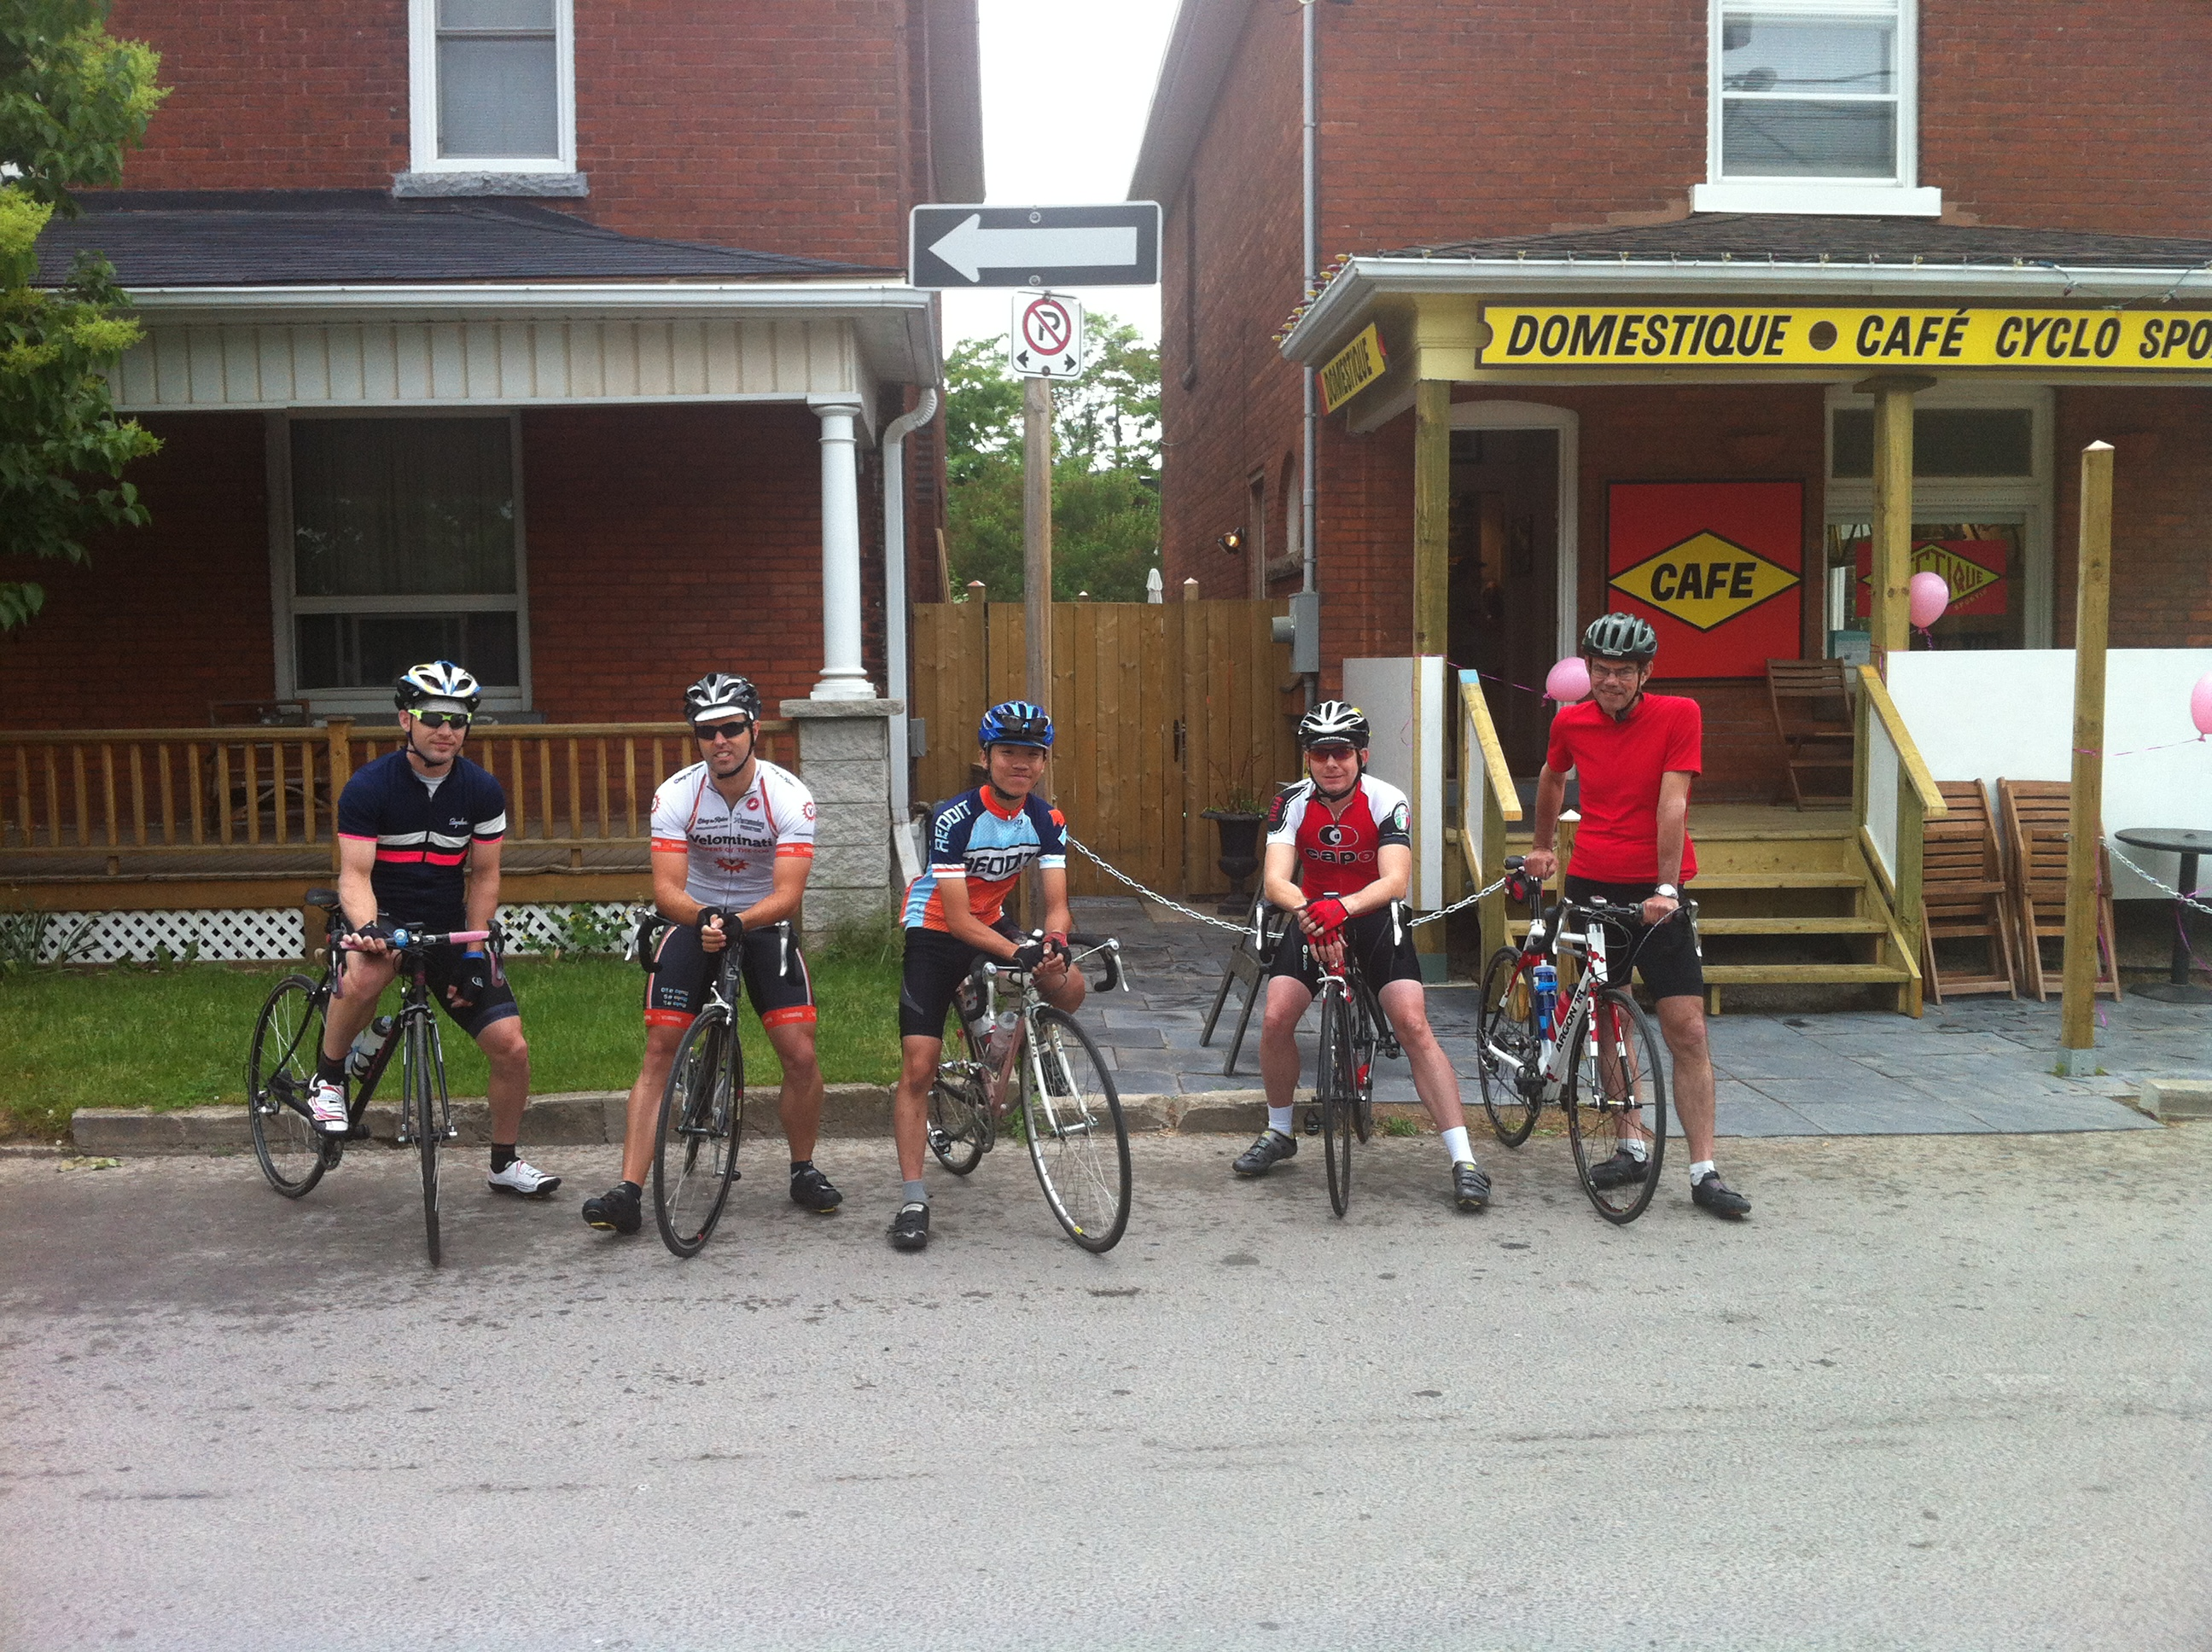 L-R: Nick, Steampunk, Adrian, Tartan1749, Will